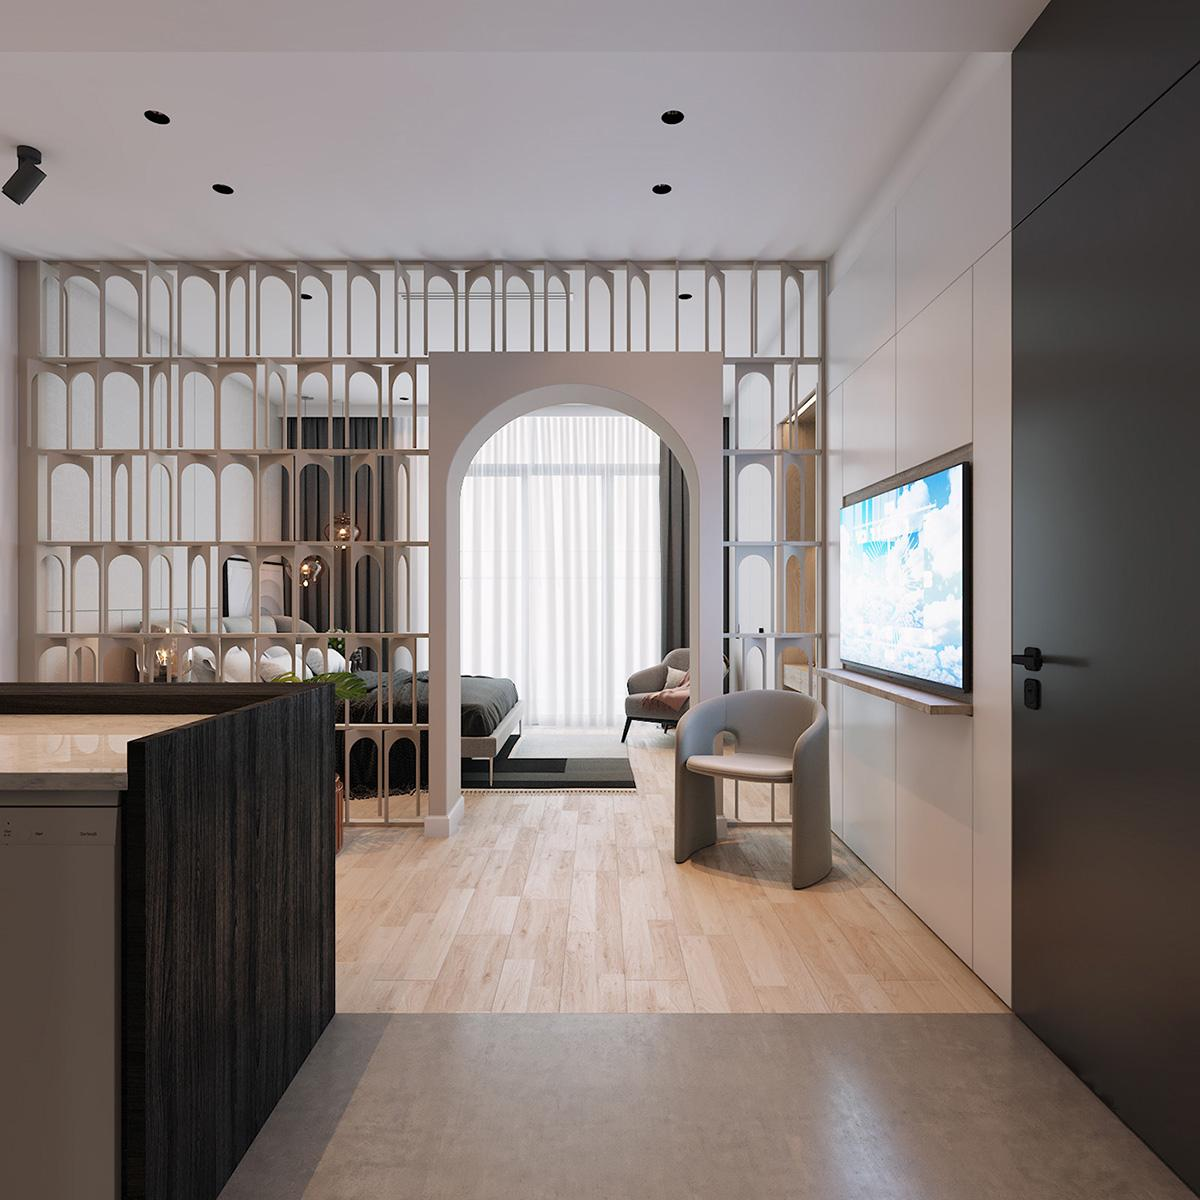 http://cdn.home-designing.com/wp-content/uploads/2021/04/arch-partition-wall.jpg